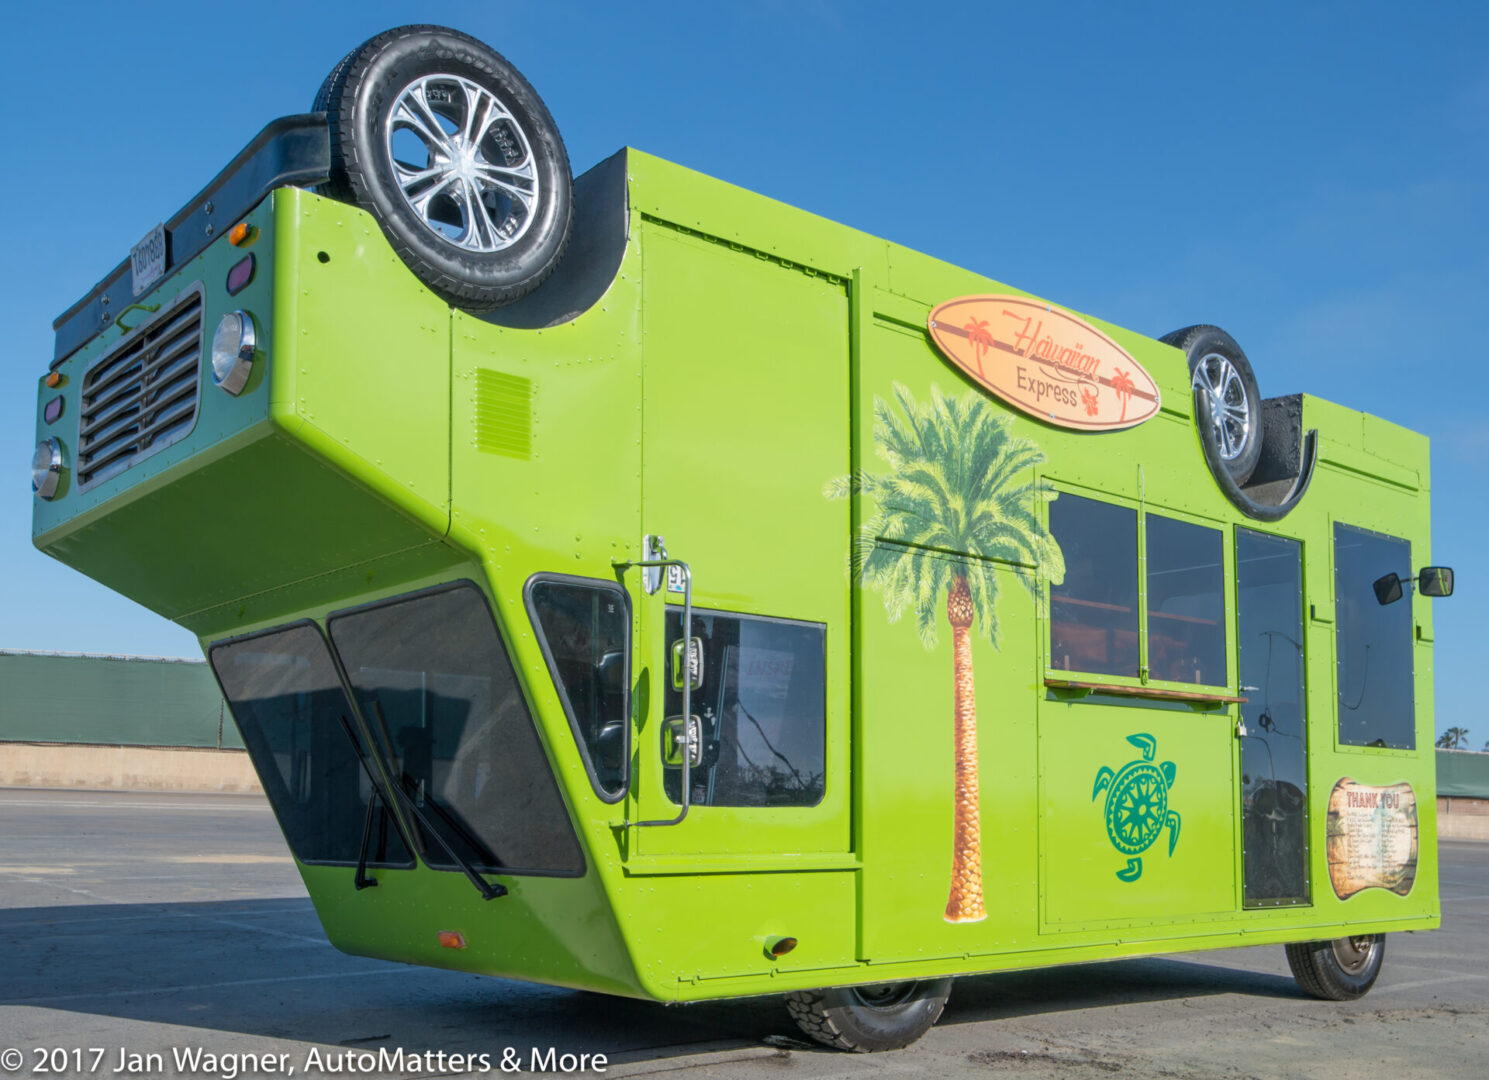 Hawaiian Express upside down food truck, in support of MADD. Conceived by Joe Wavra, CFO, The HVAC Exchange in Chula Vista, CA.